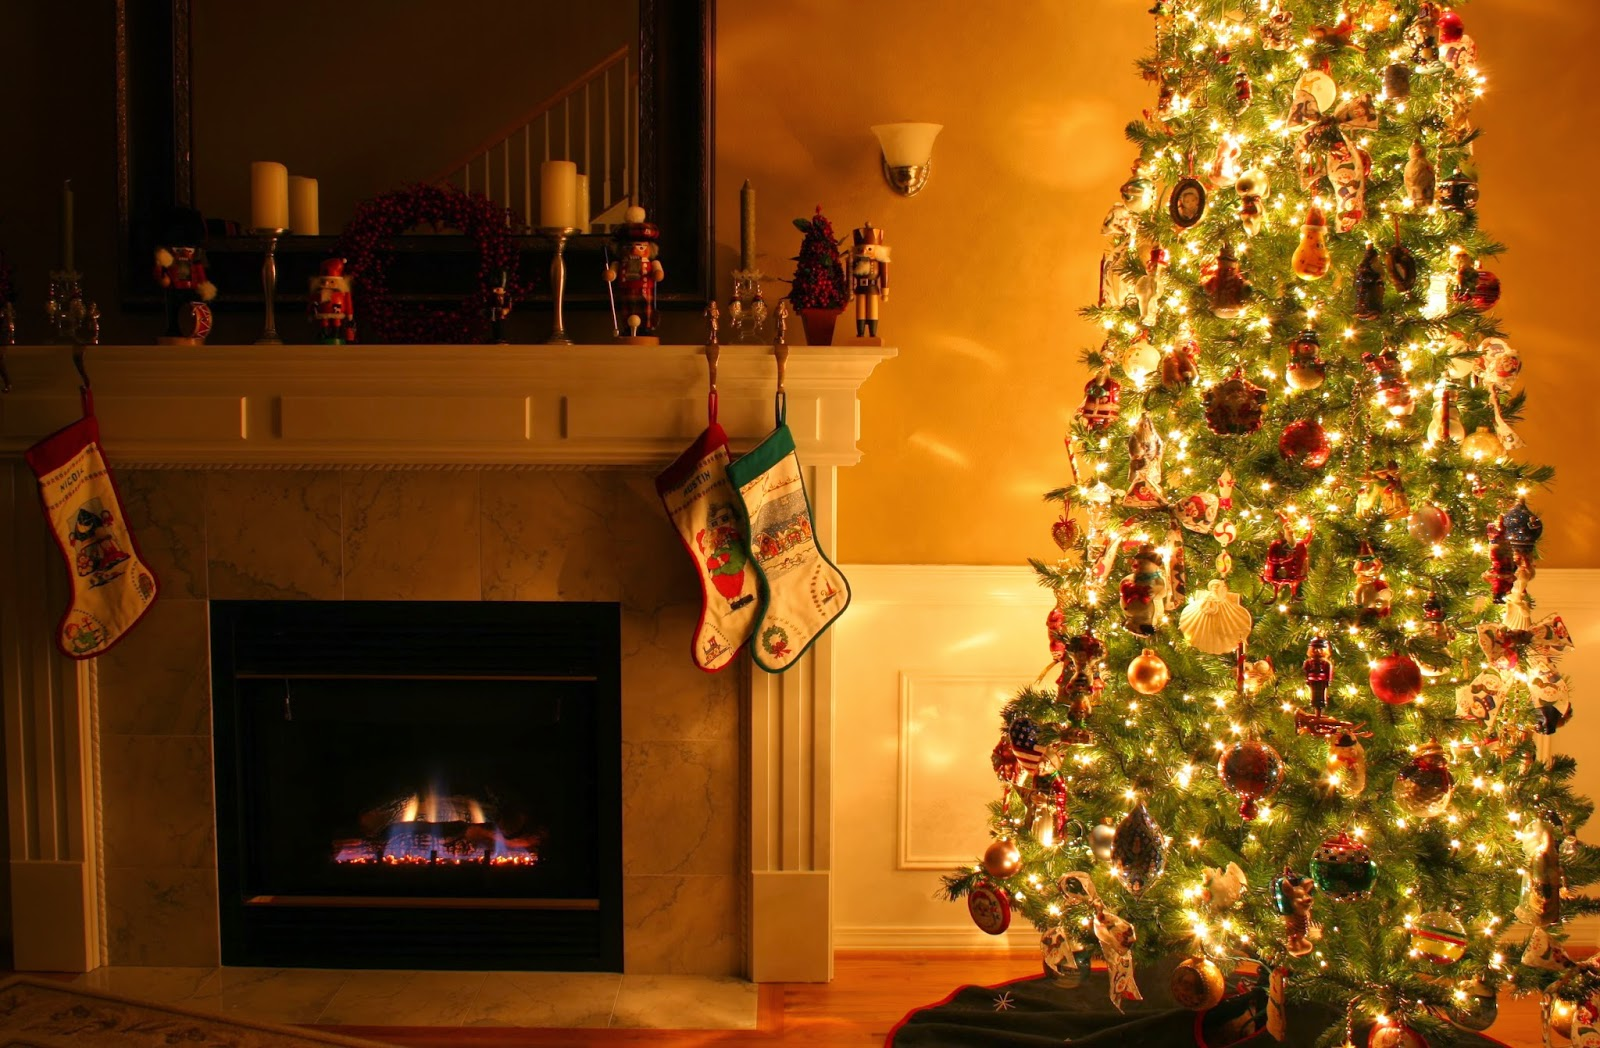 Simple-decoration-ideas-theme-for christmas-fireplace-with-fire-3455x2263.jpg